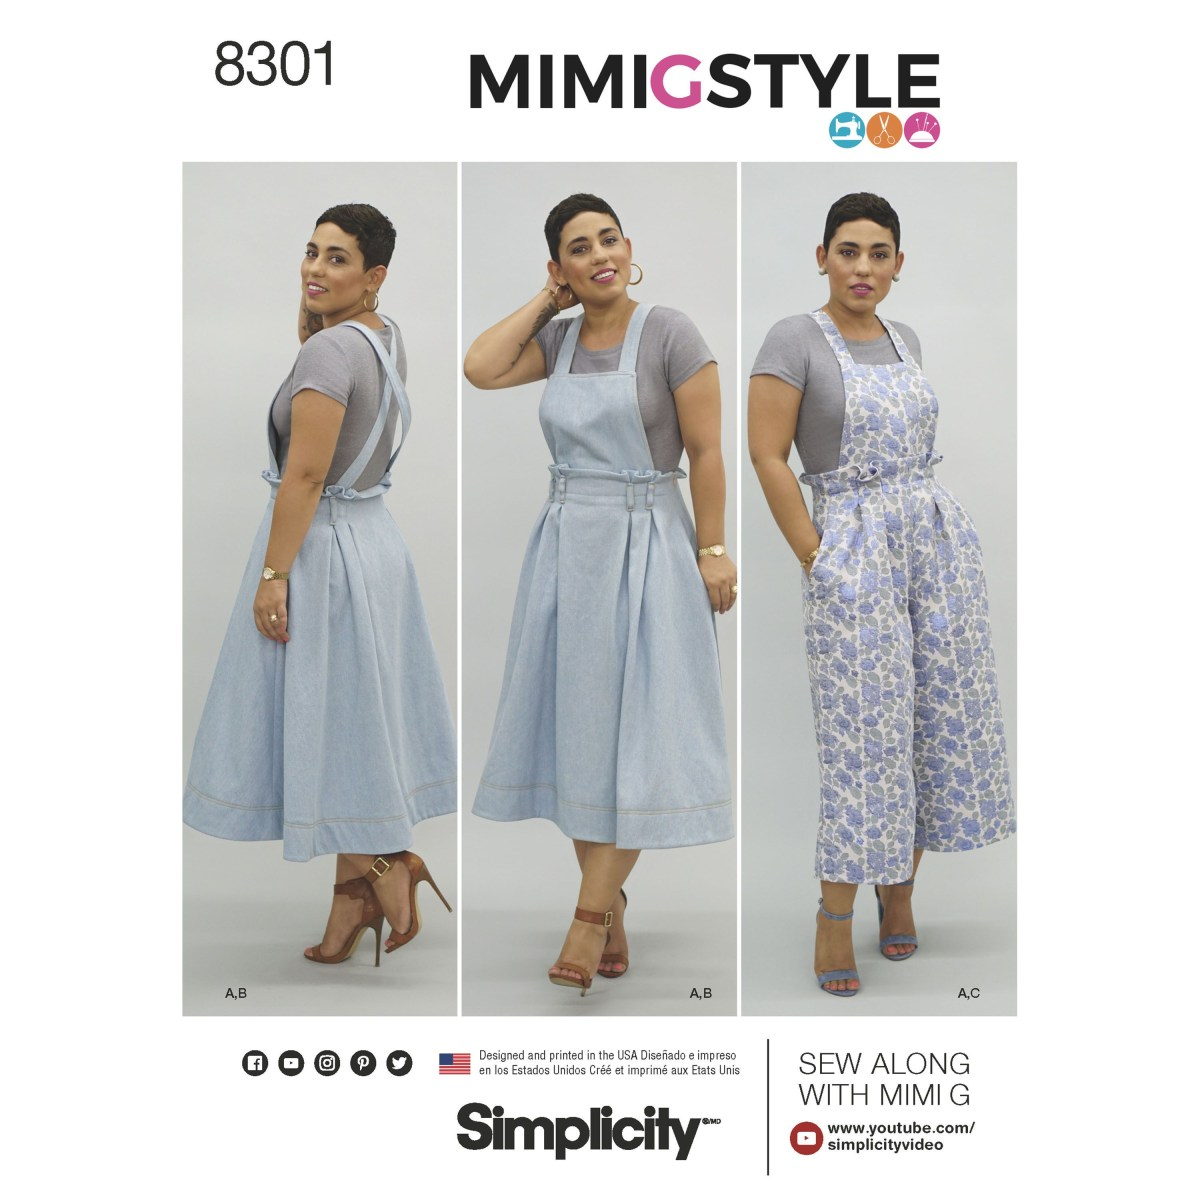 Crop Top Sewing Pattern Simplicity 8301 Mimi G Style Misses Overalls And Knit Crop Top